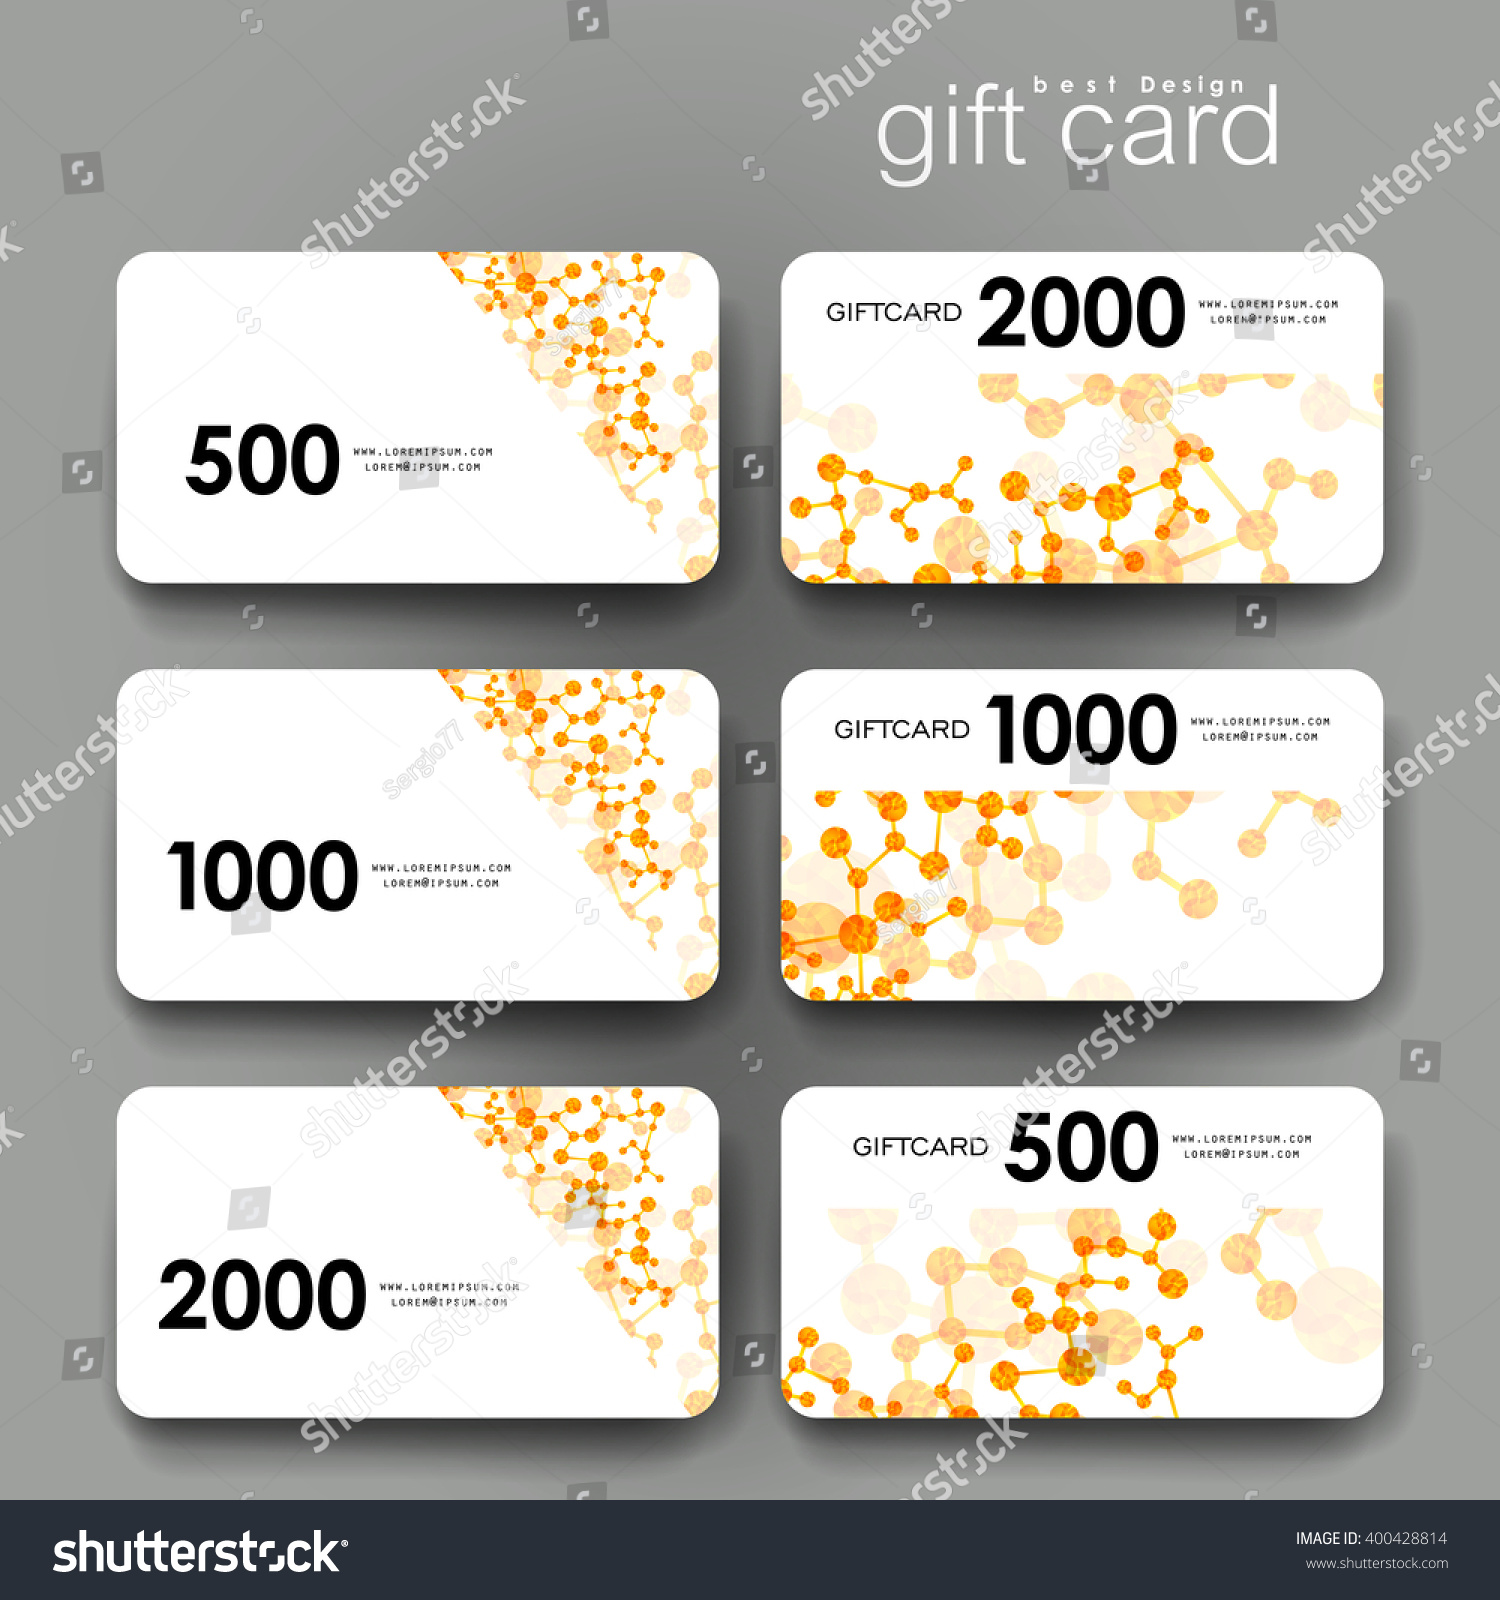 Design of discount card - Gift Coupon Discount Card Template With Dna Molecule Background Creative Layout Design